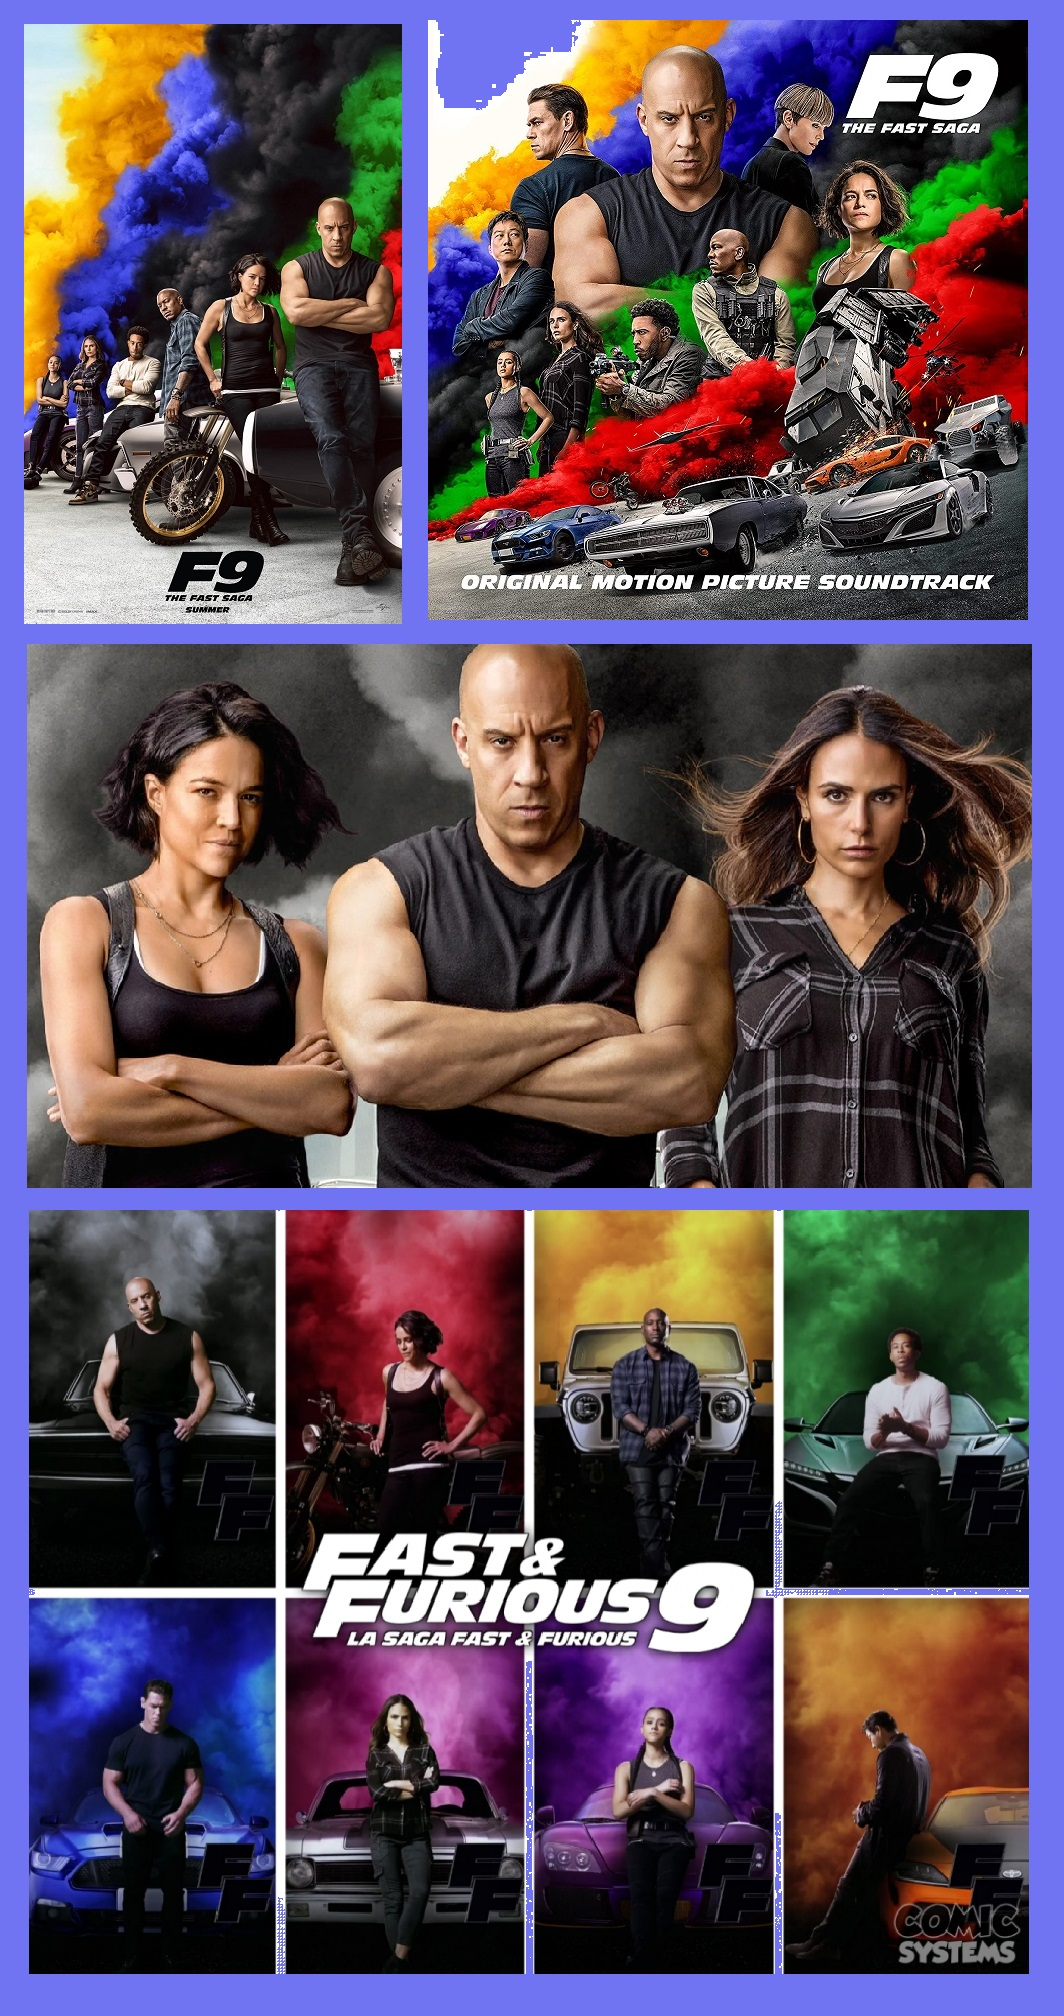 Fast & Furious 9 (Songs)